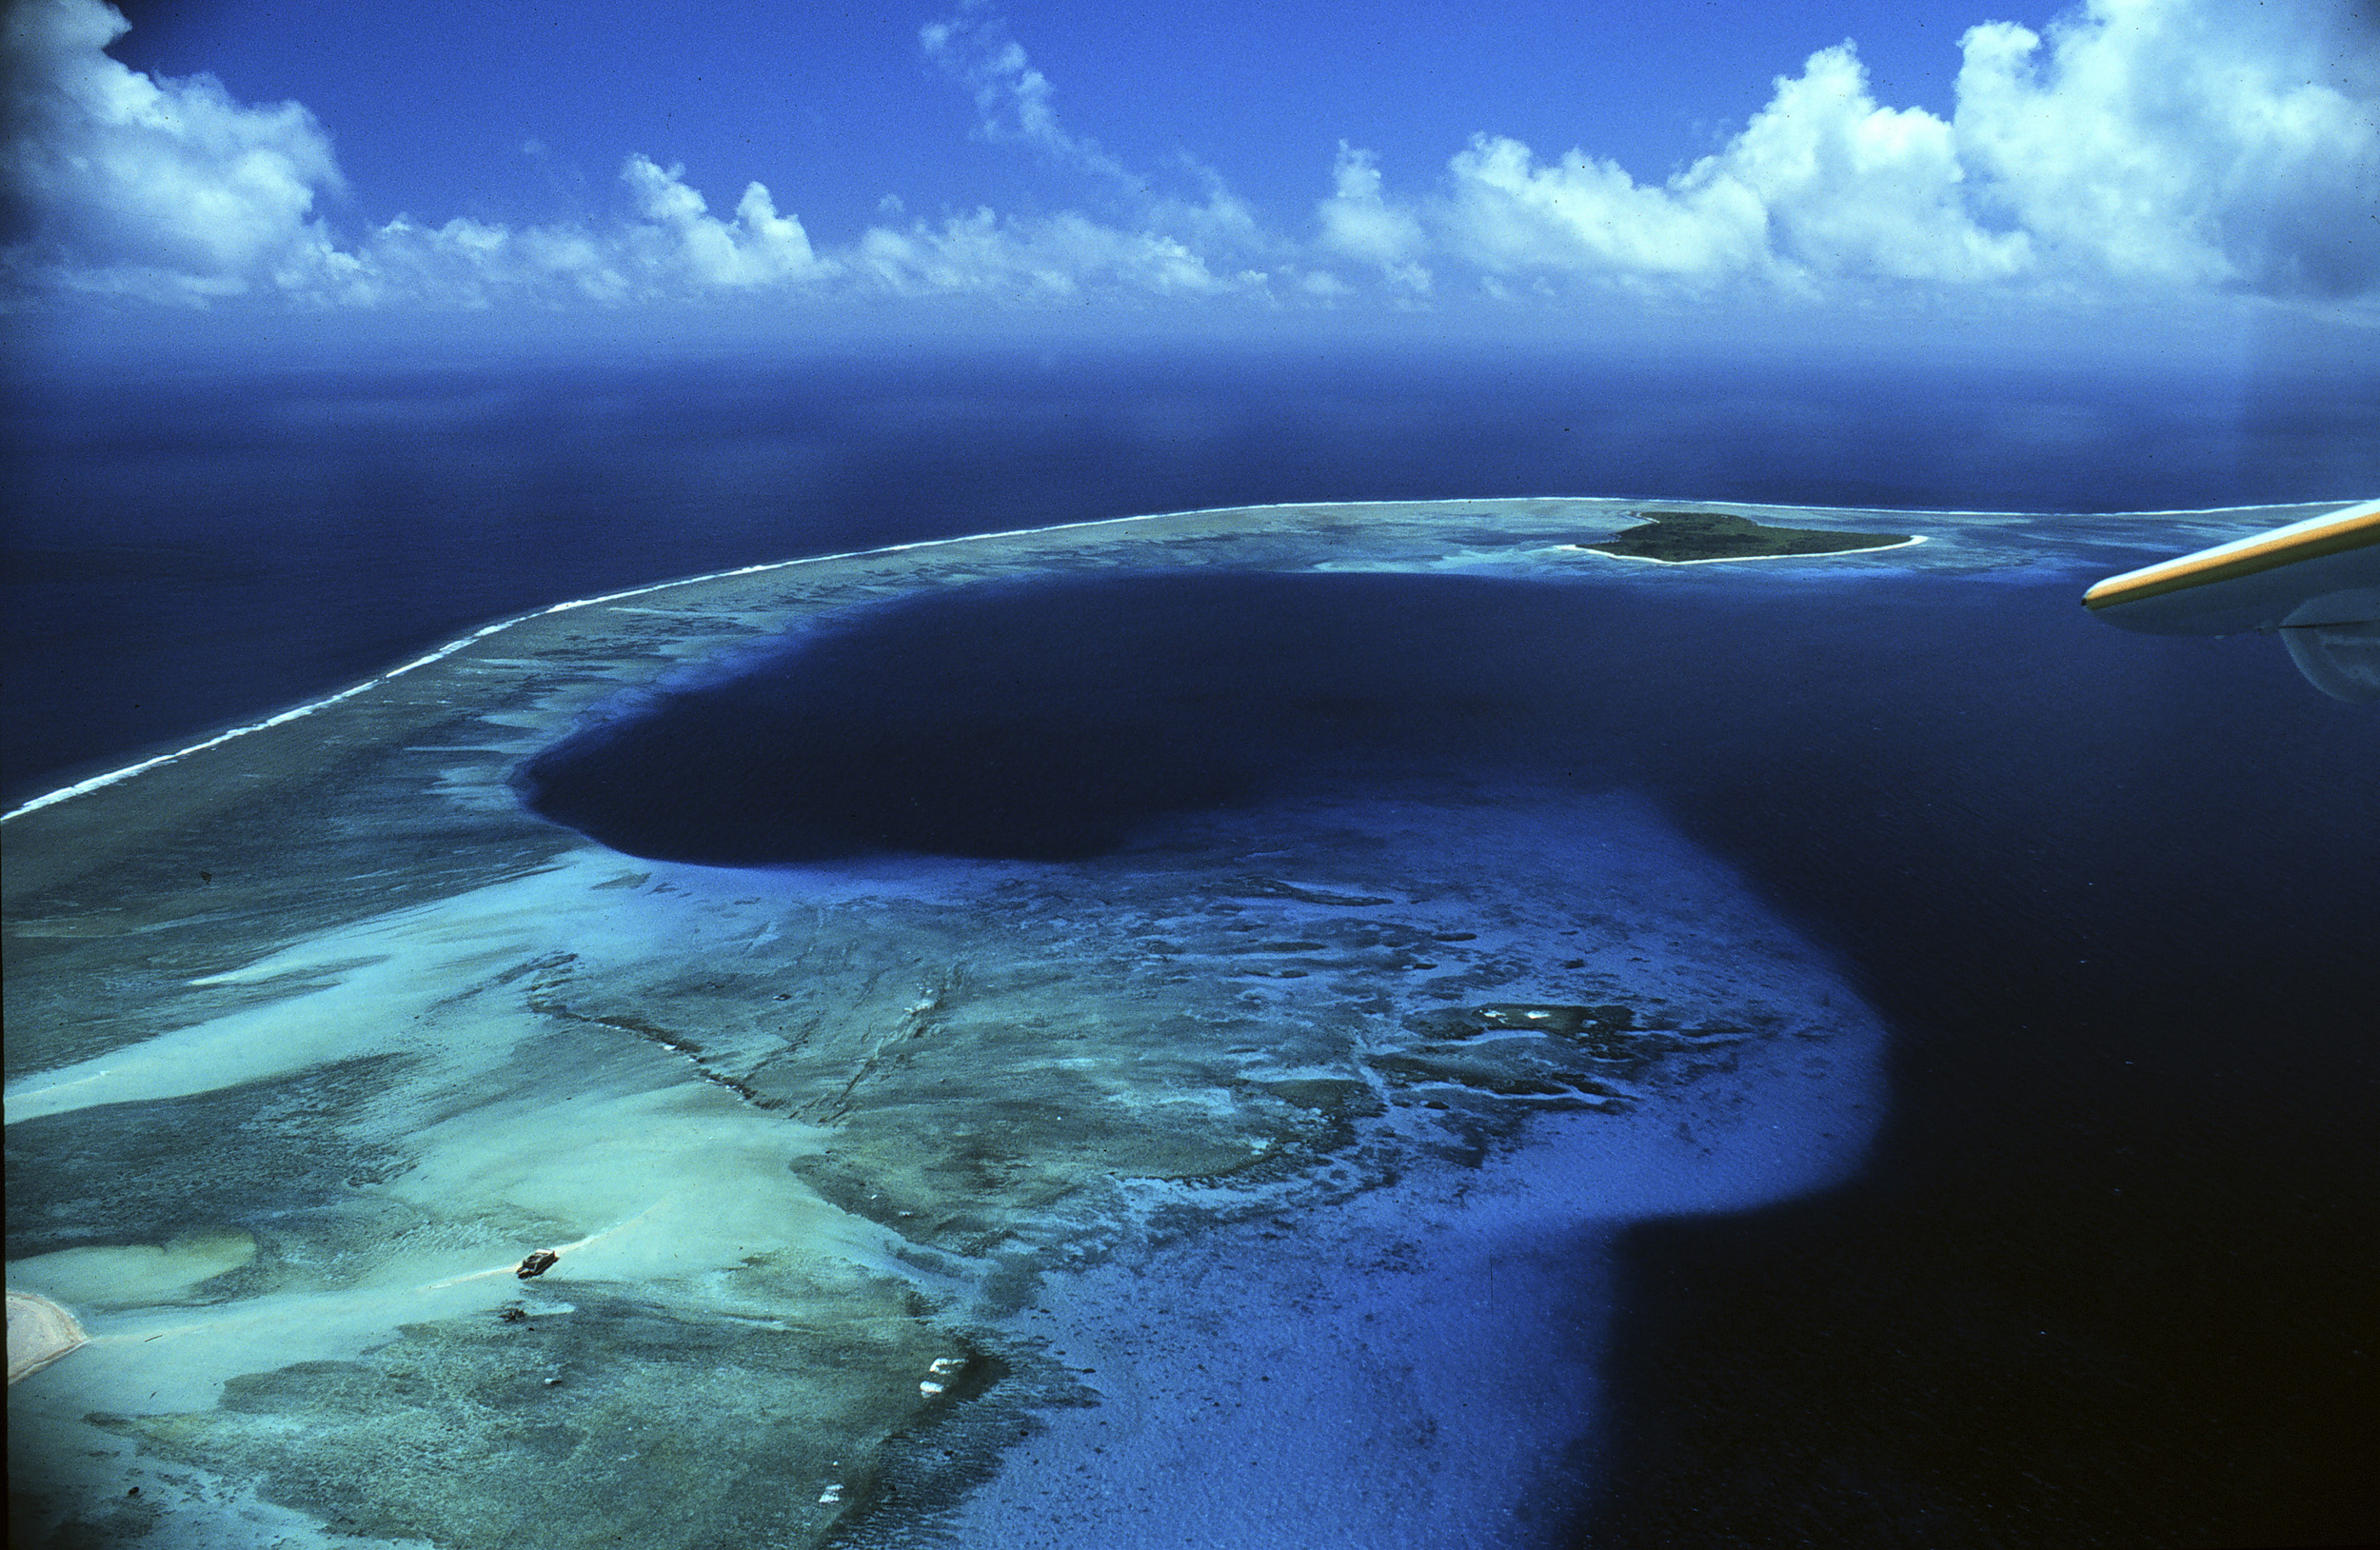 Bikini-Atoll-Marshall-Islands